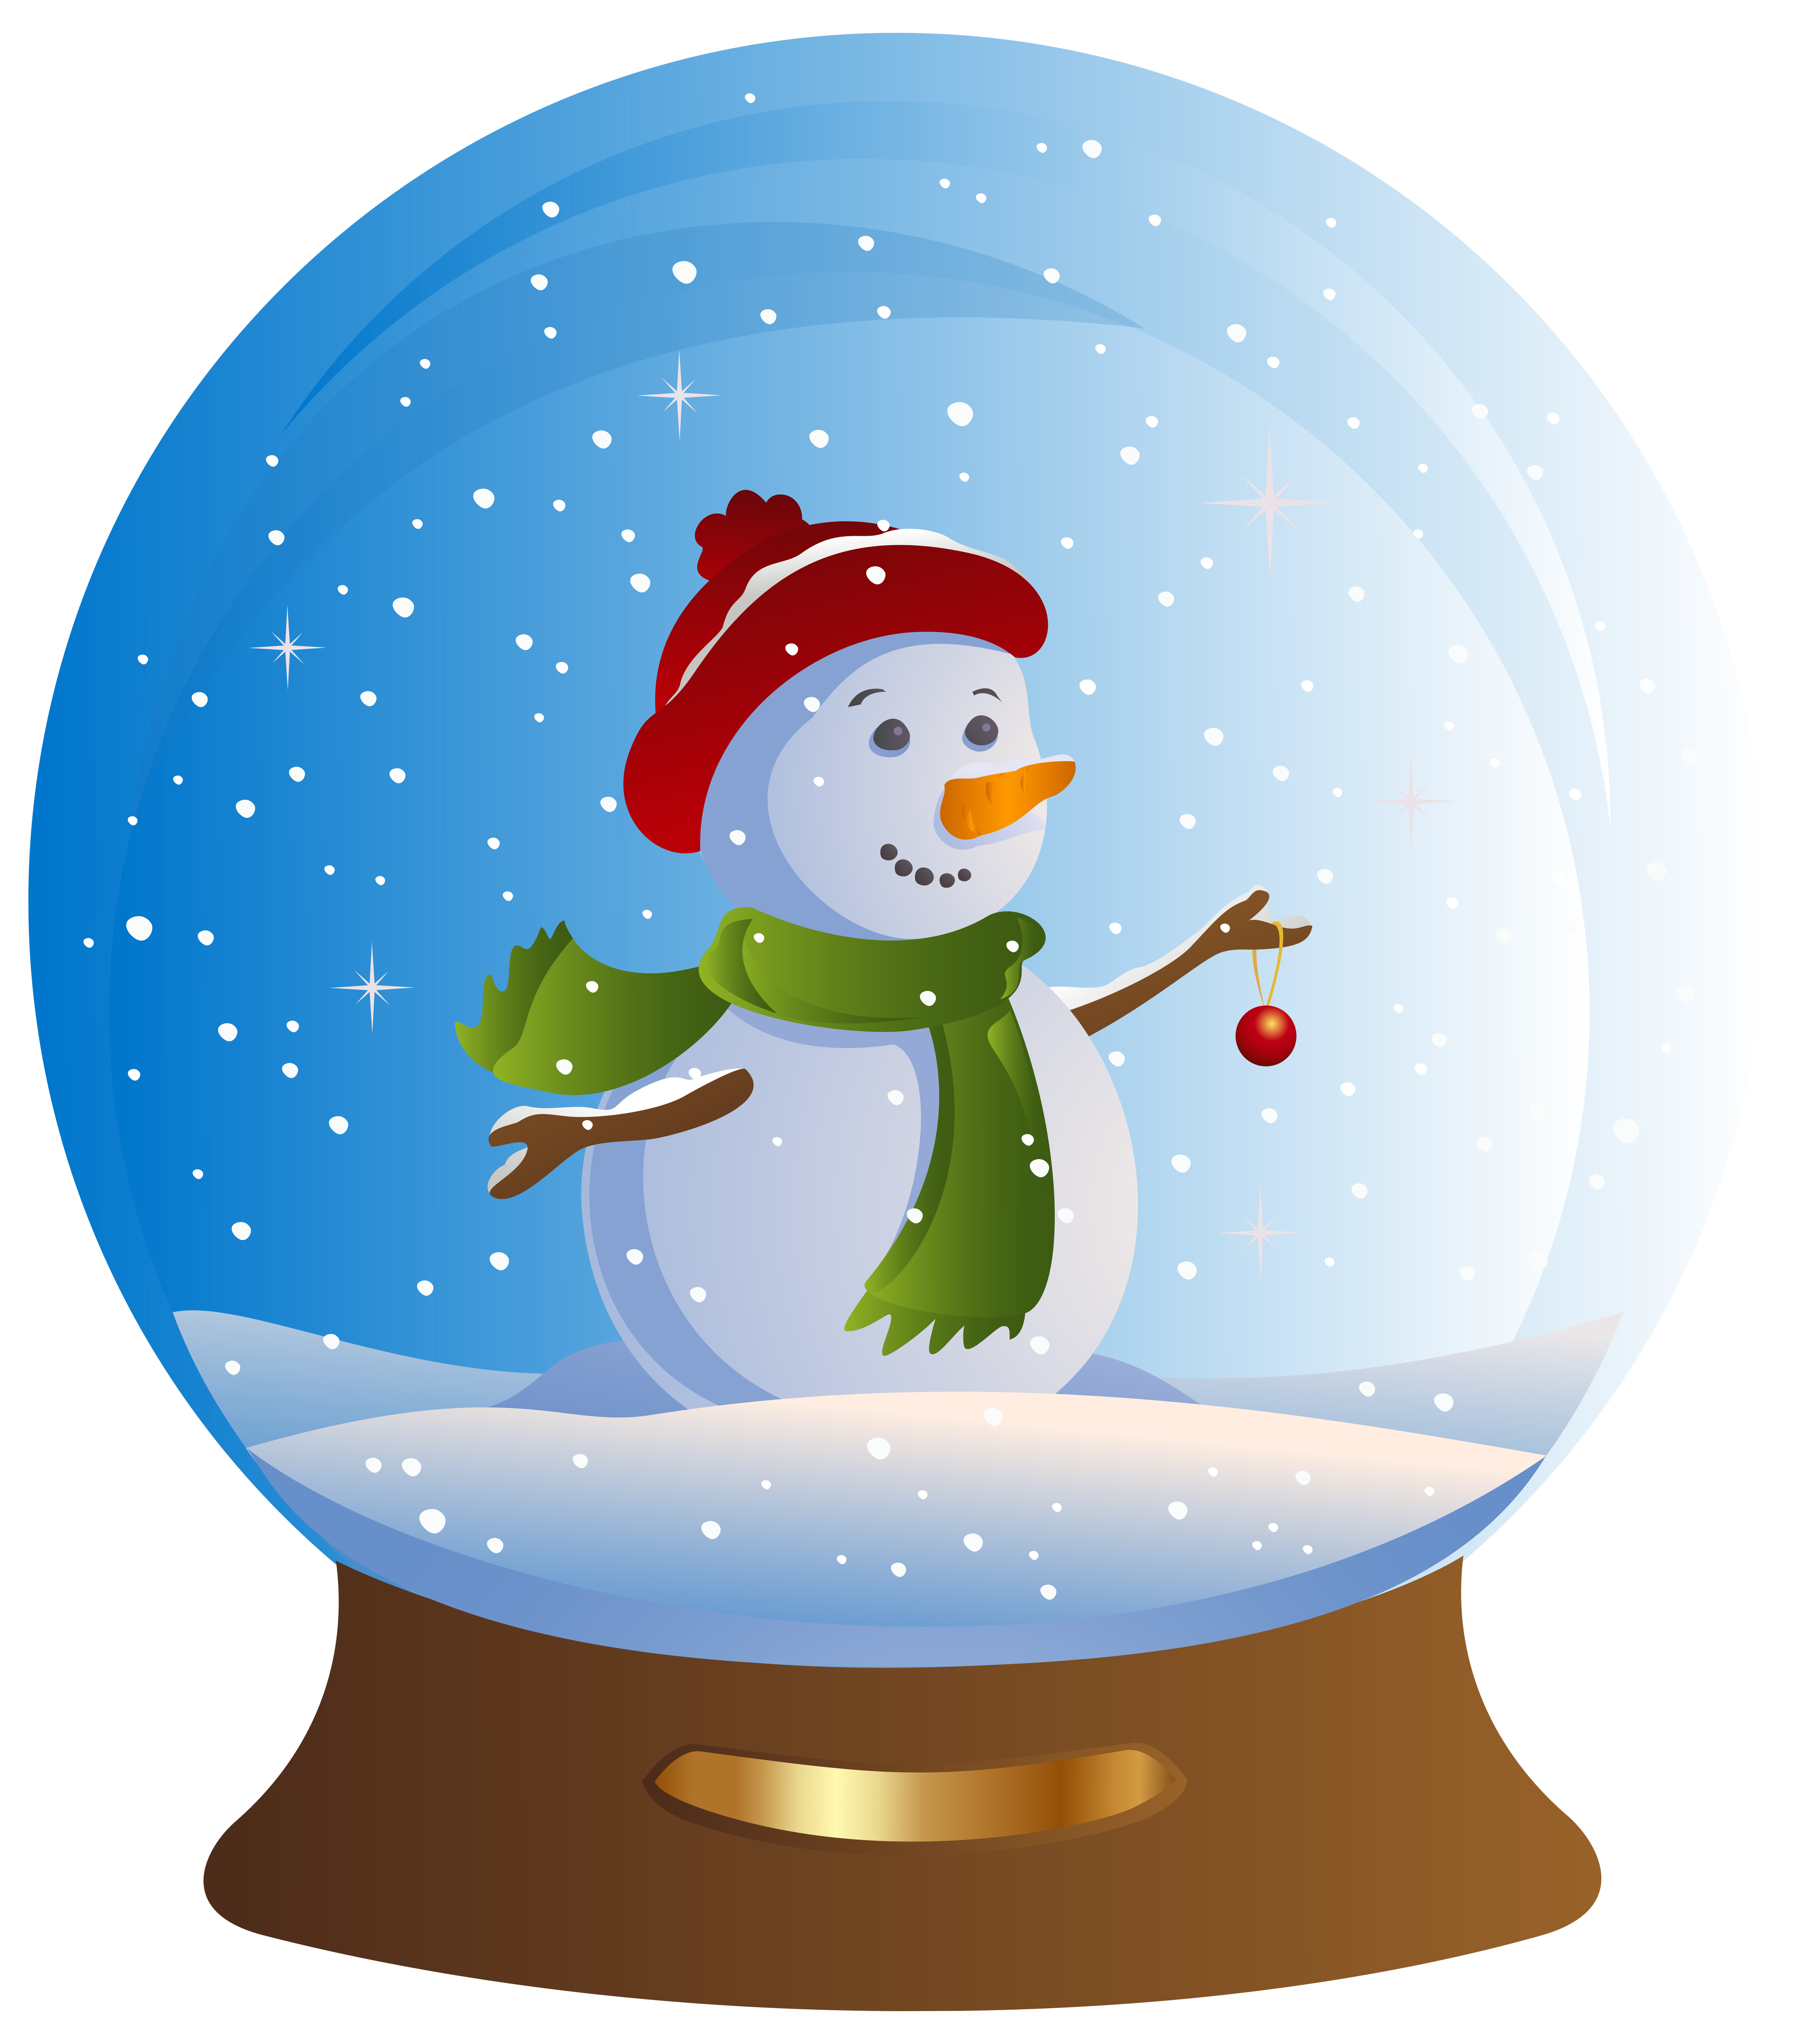 collection of snowman. Snowglobe drawing eve clipart transparent